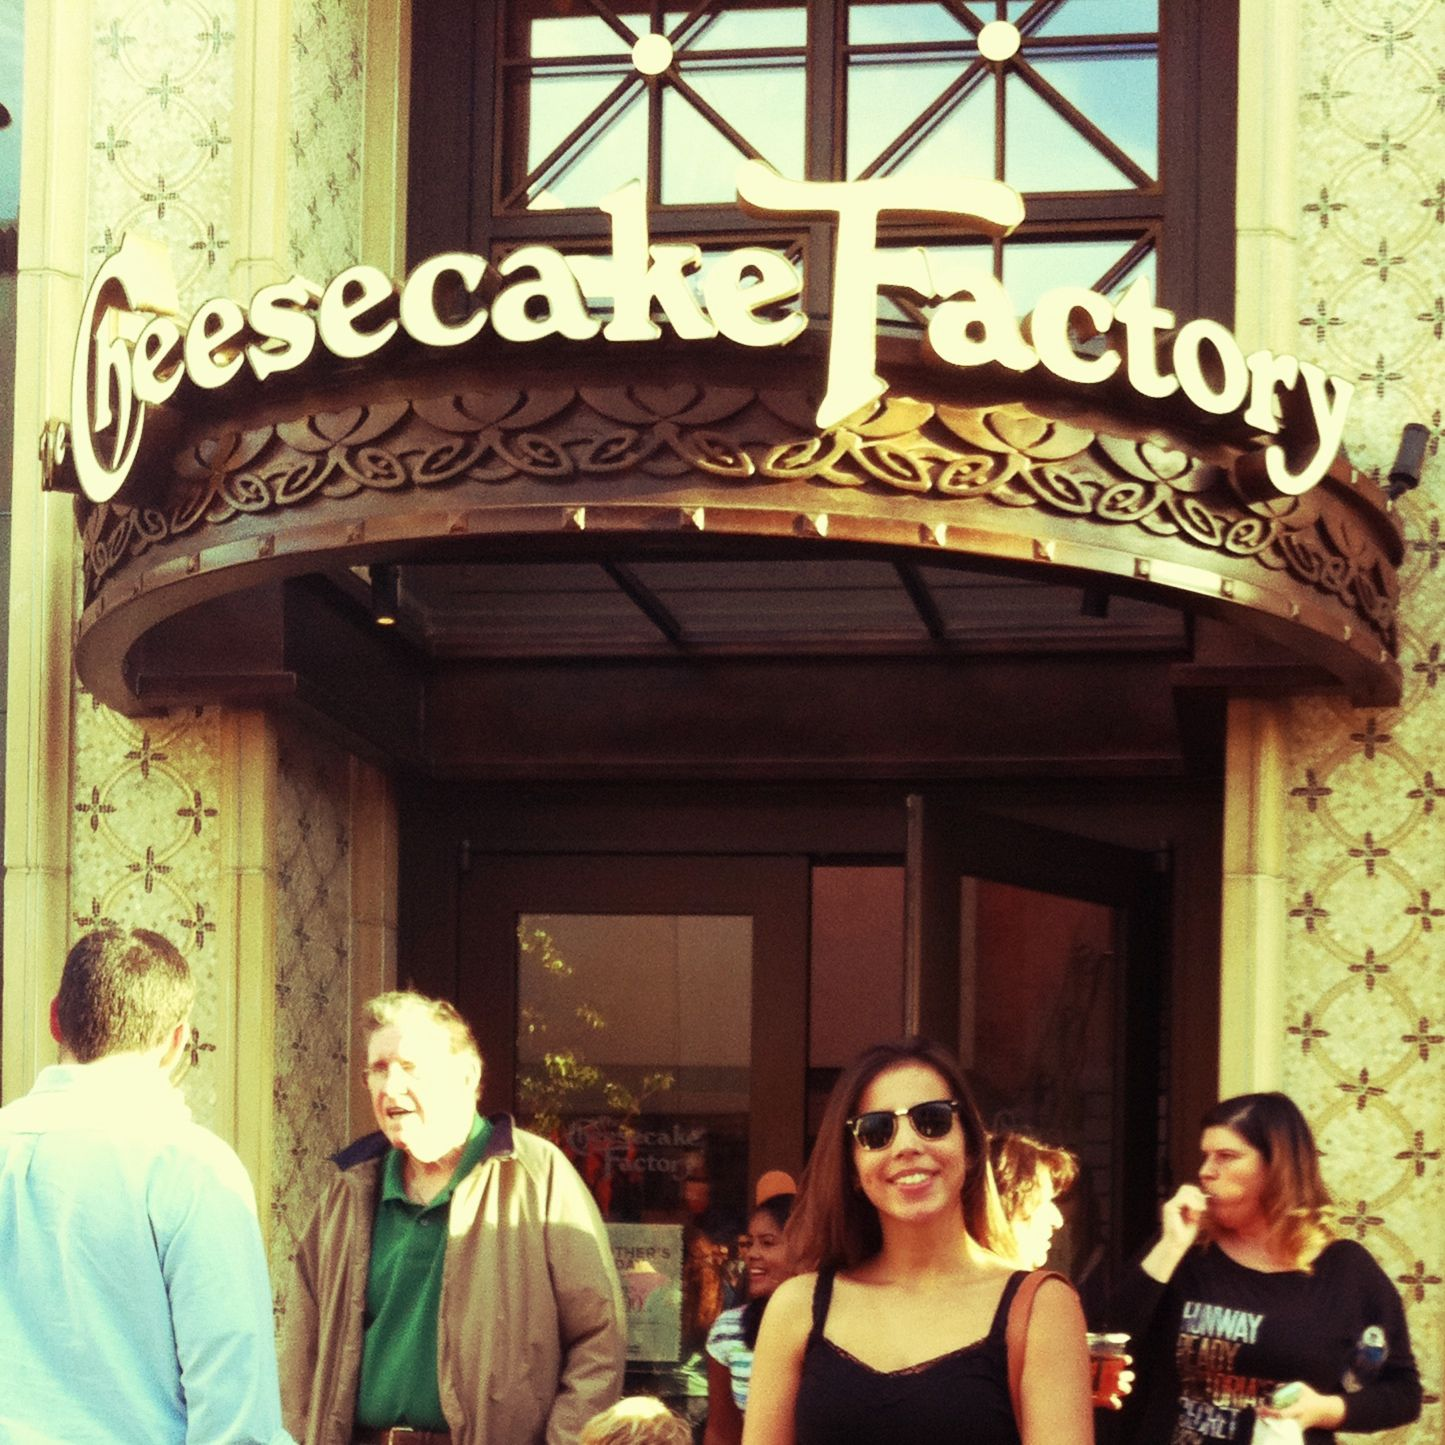 Cheesecake Factory in LA